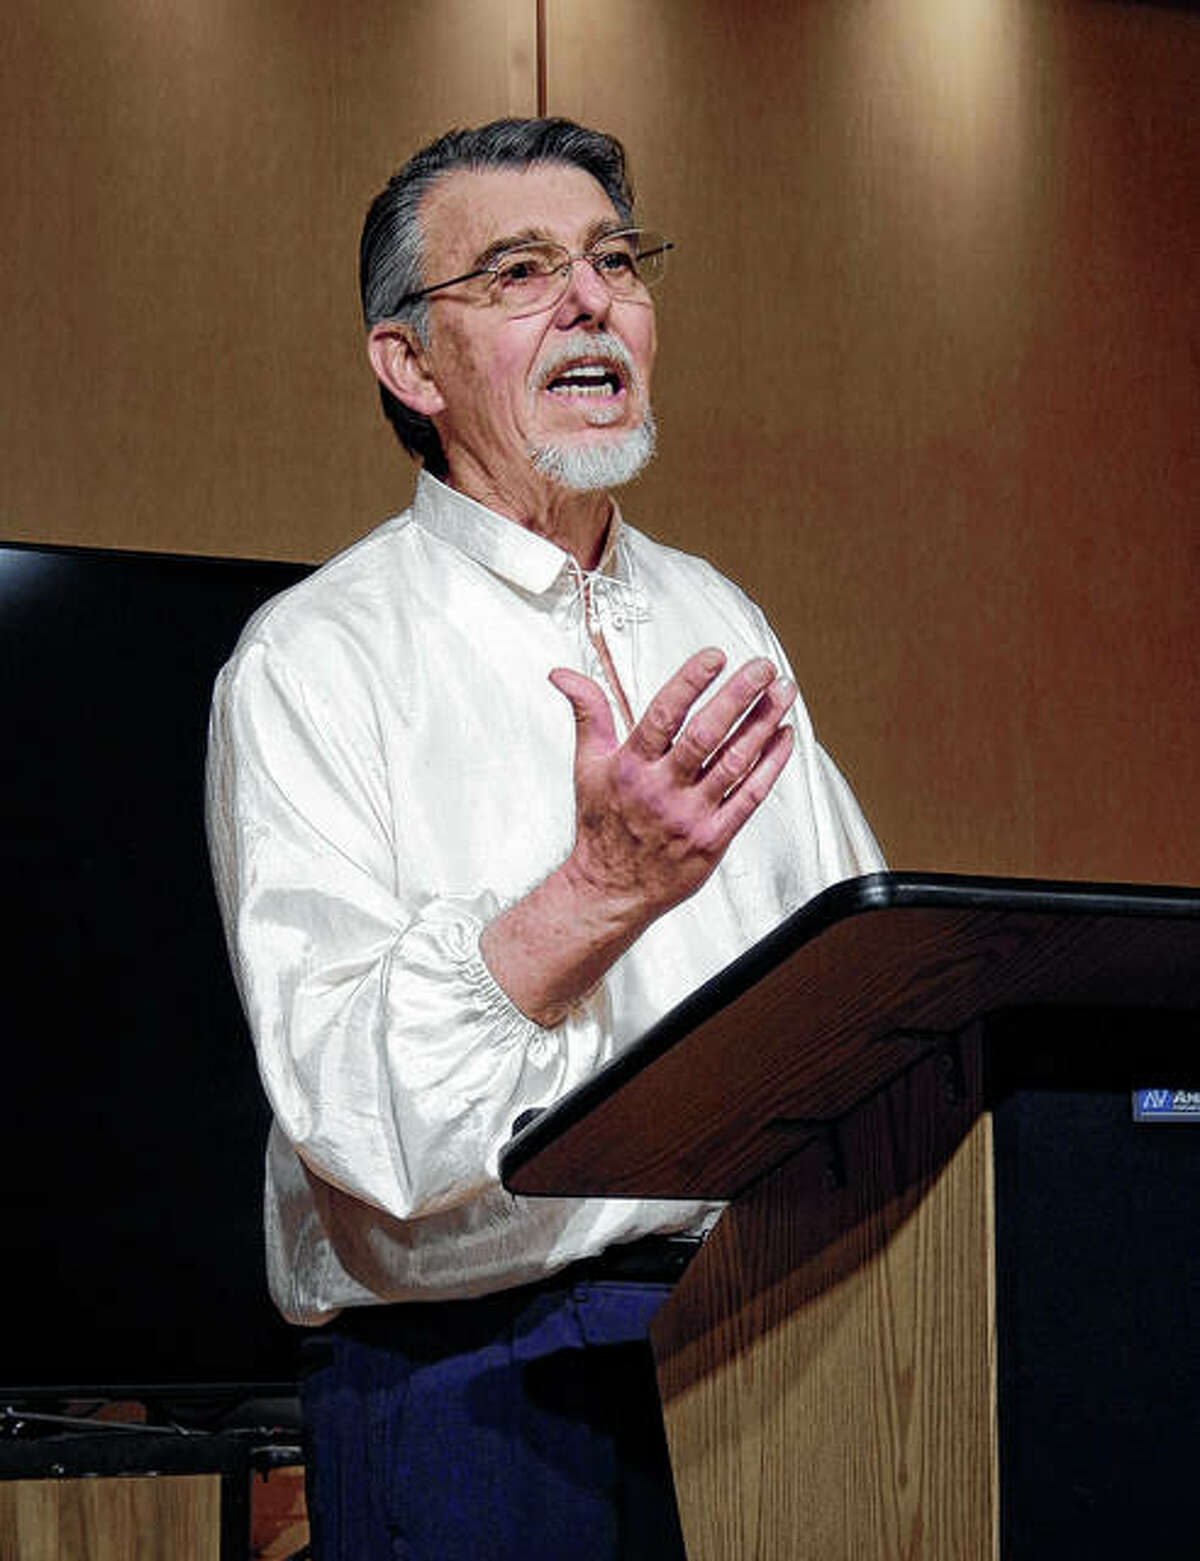 Robert Seufert rehearses in May 2018 ahead of a reading of Romantic poems as part of a fundraiser for the Jacksonville Symphony Society. Seufert, a professor emeritus of literature at MacMurray College, will read selections from his two latest chapbooks during an event at 7 p.m. today at Our Town Books.